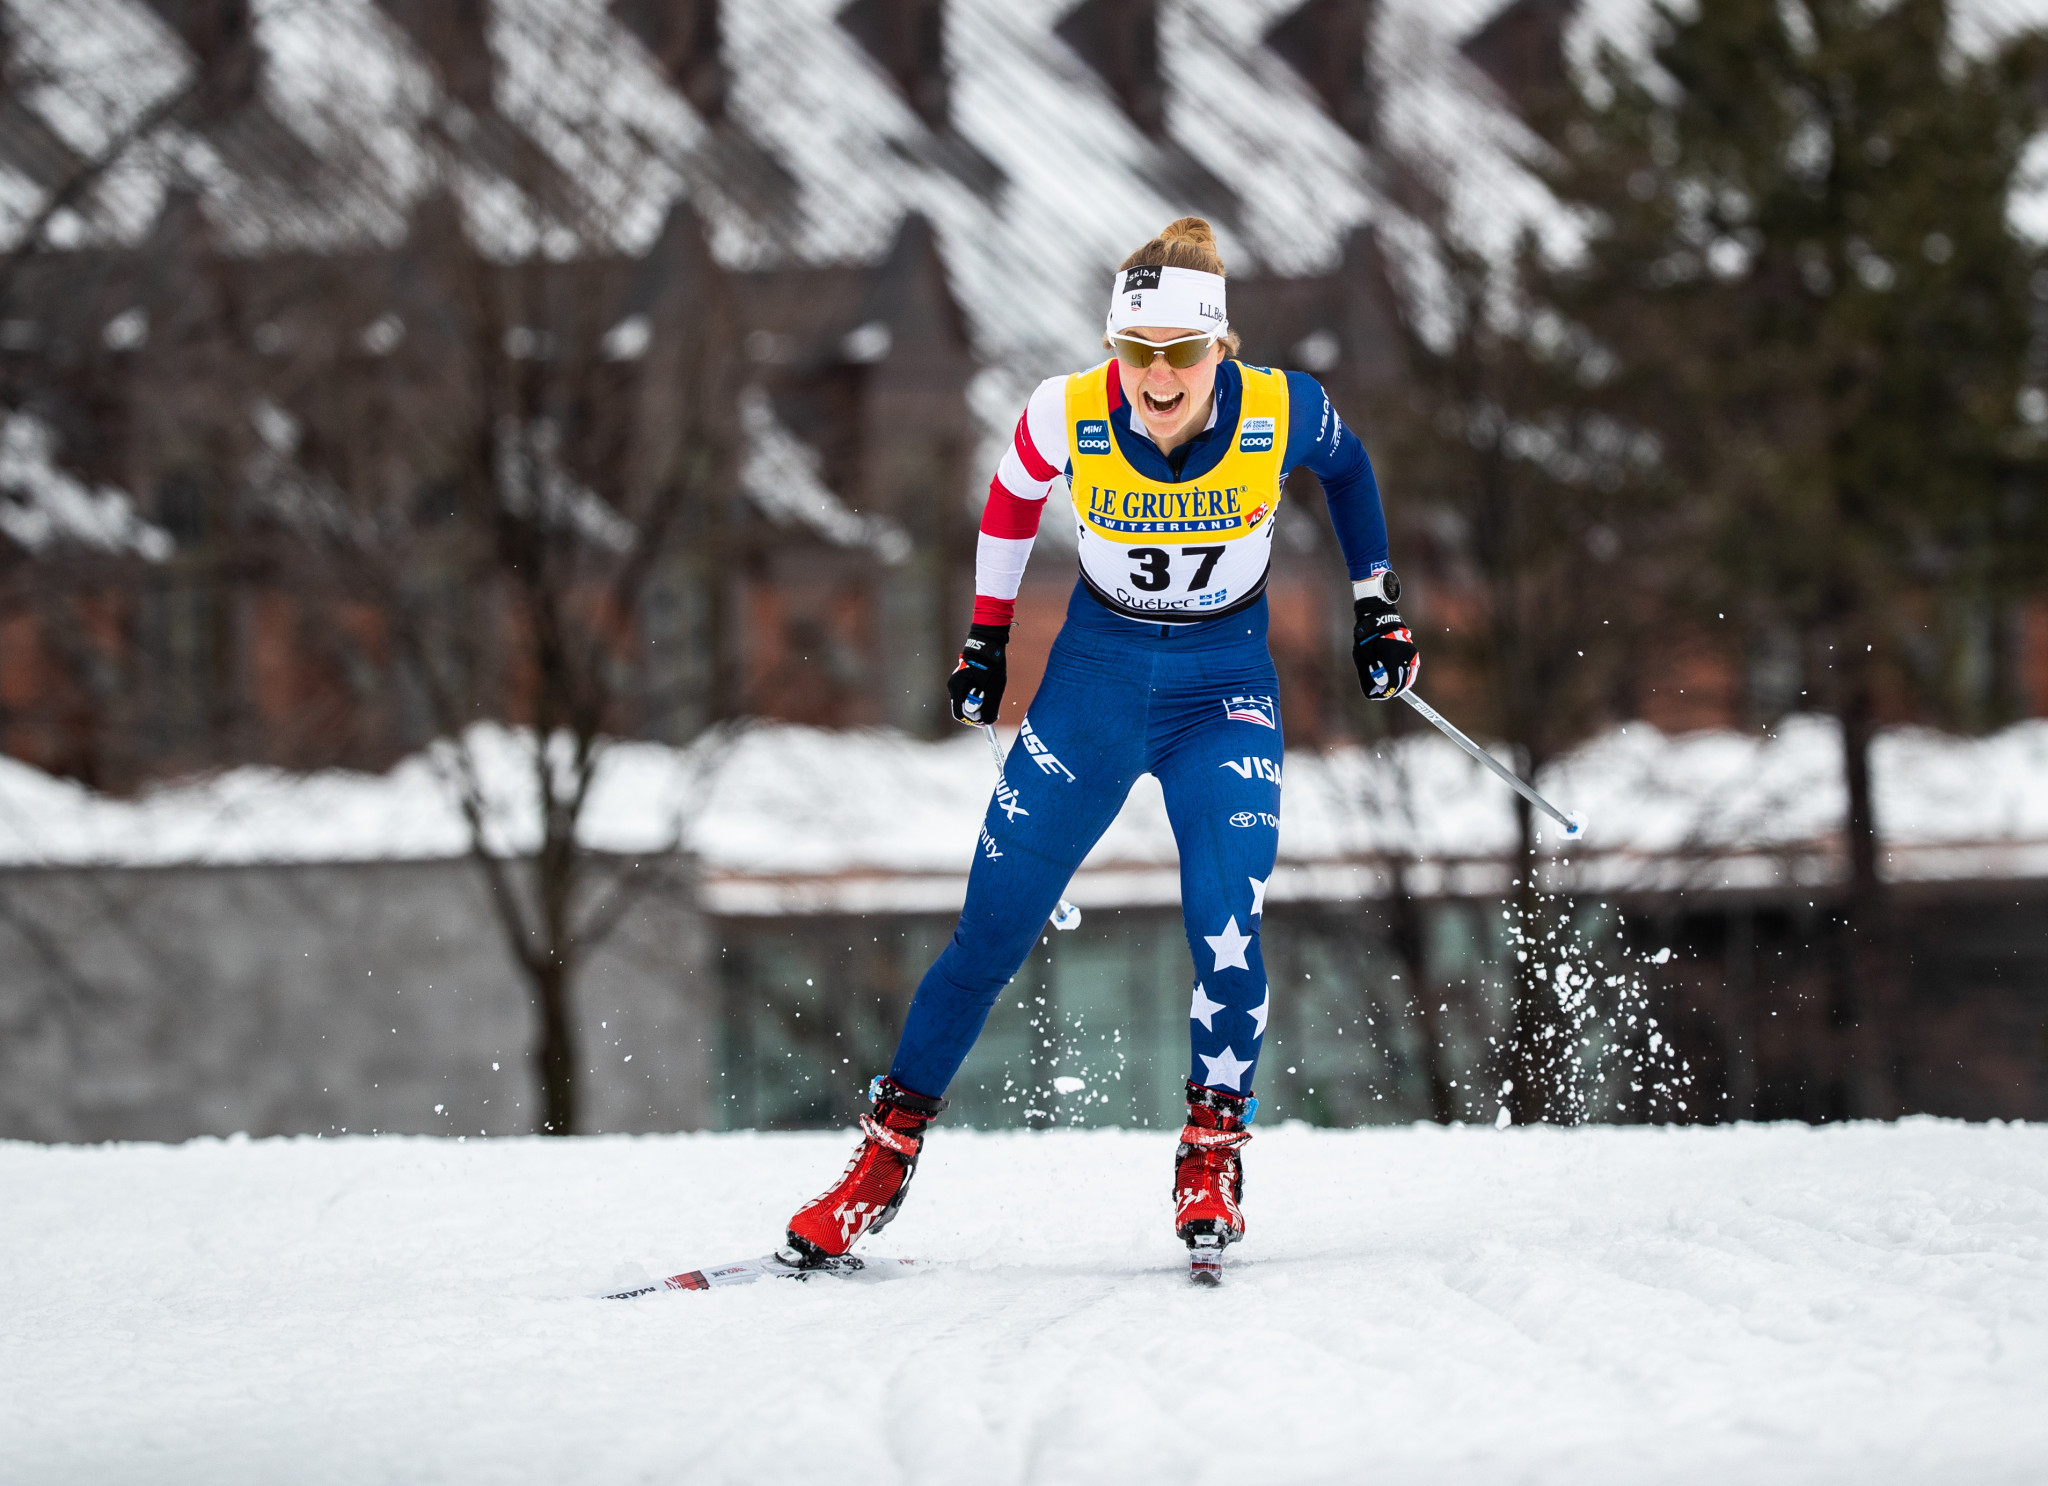 Ida Sargent from the United States won the women's classic sprint at the 2019 US Cross-Country Championships ©Getty Images